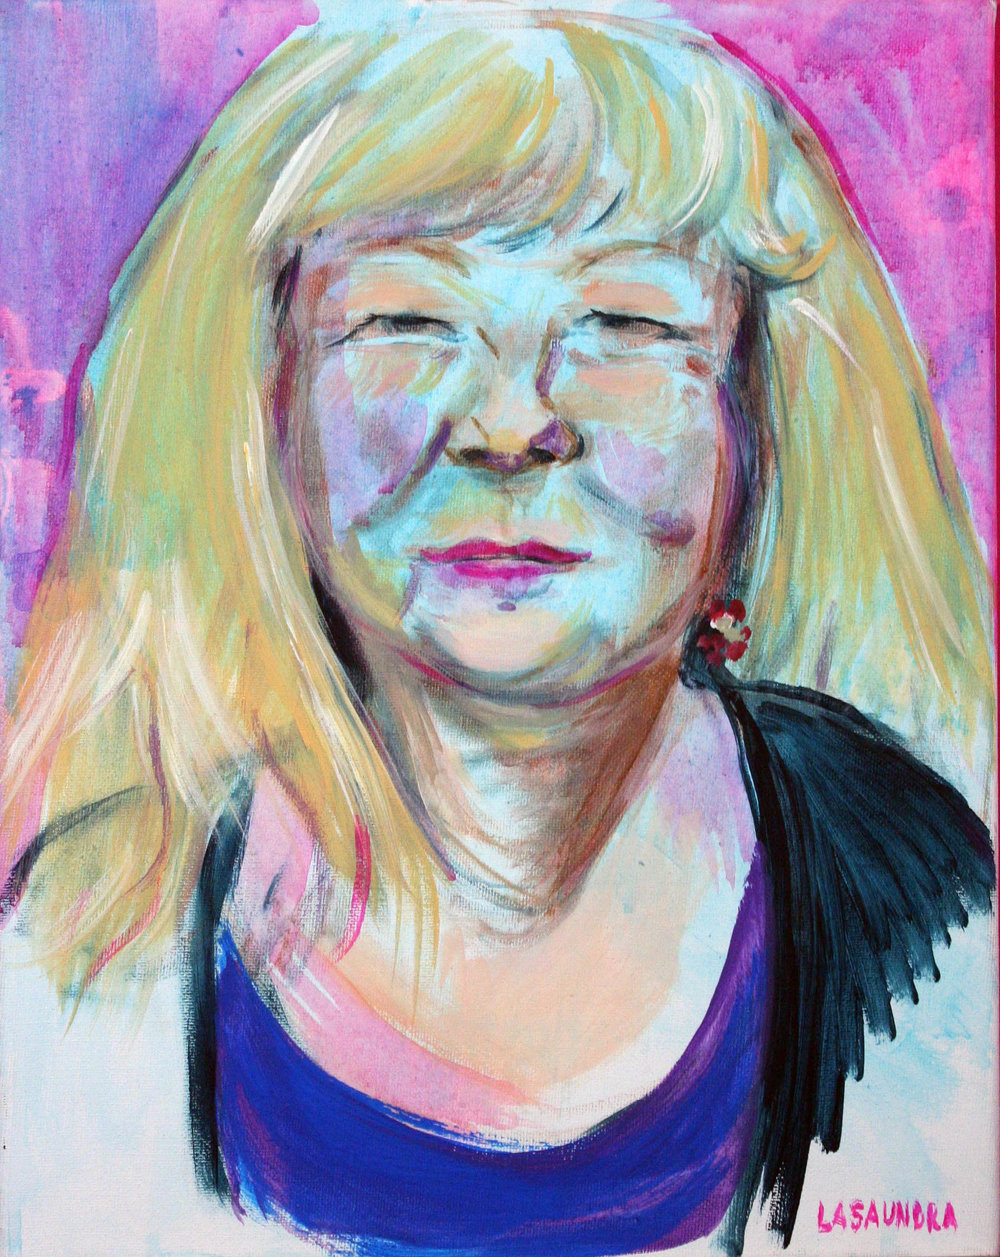 Lasaundra Robinson did this acrylic painting.